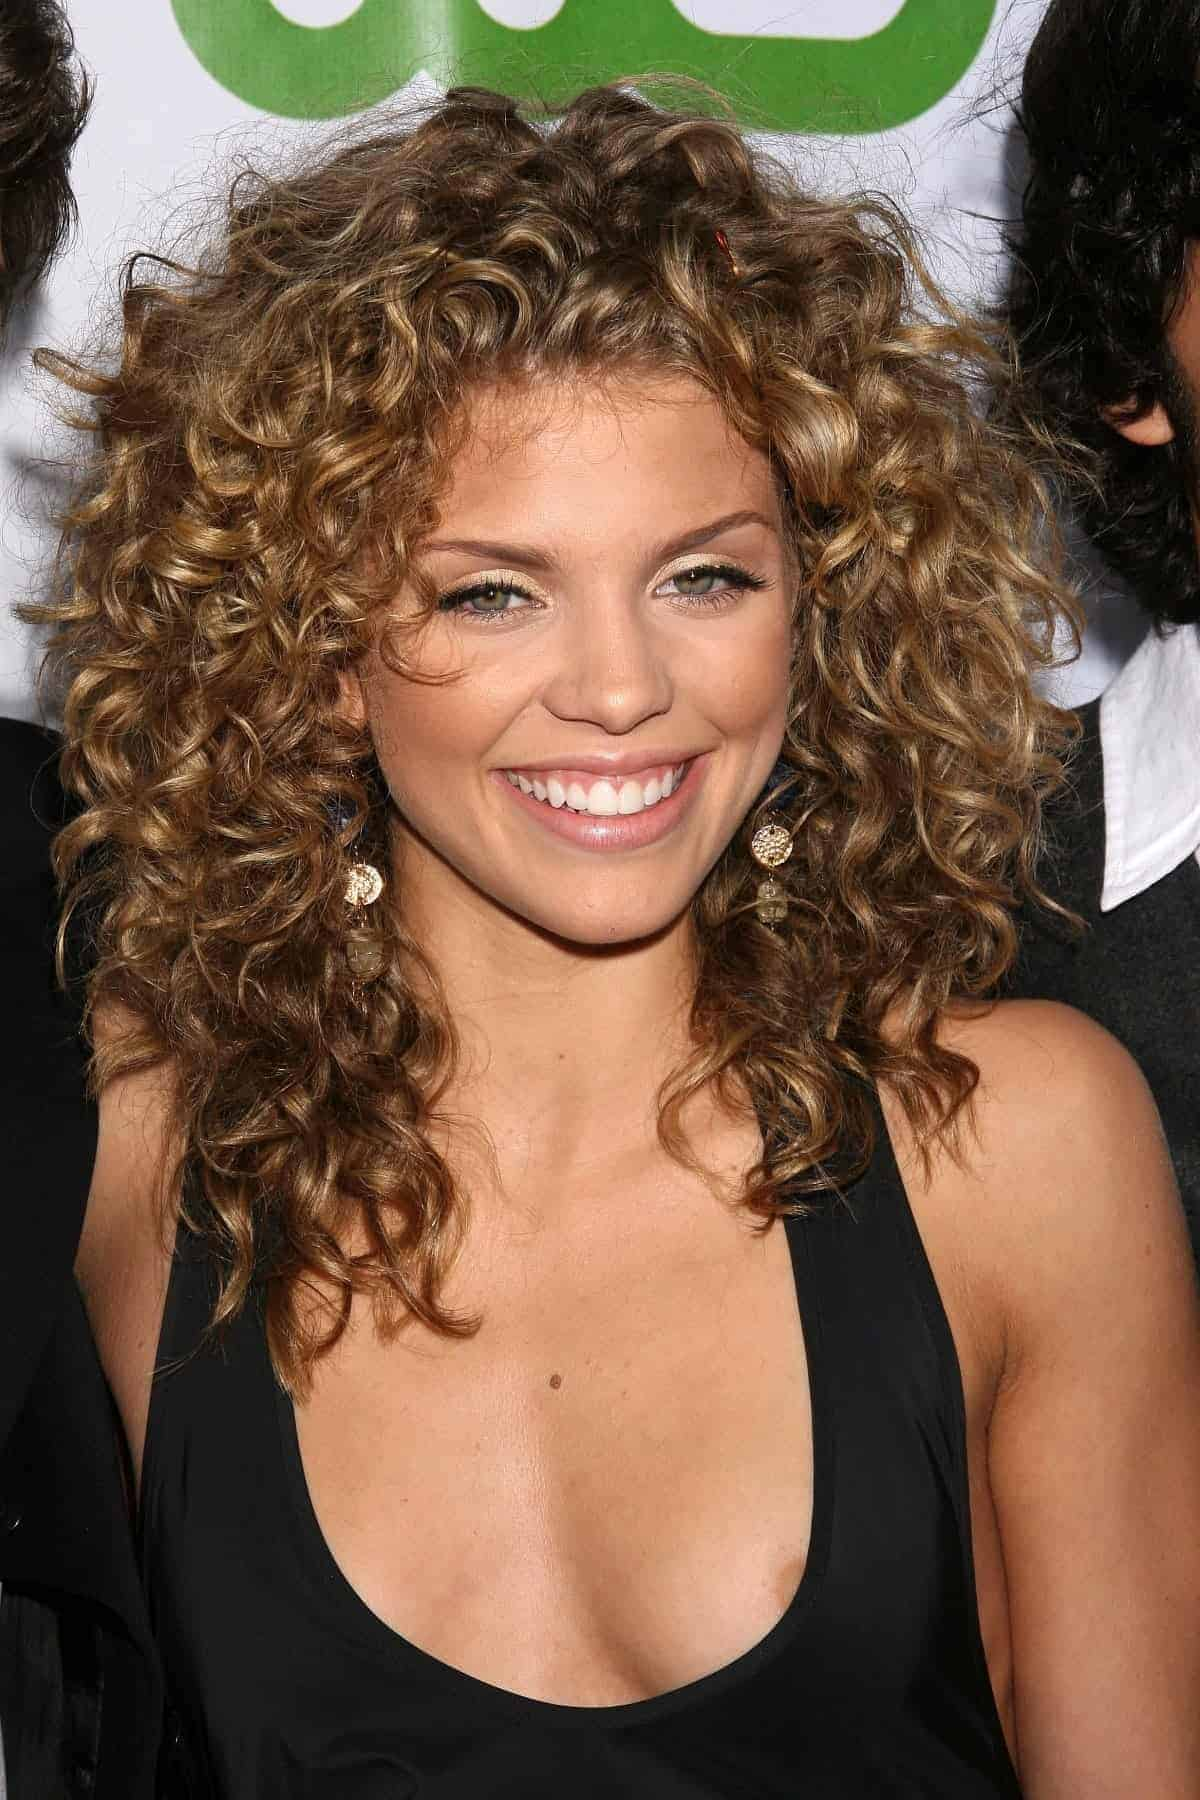 Pleasant Hairstyles For Curly Hair 2015 Women Styles Hairstyles Makeup Short Hairstyles Gunalazisus